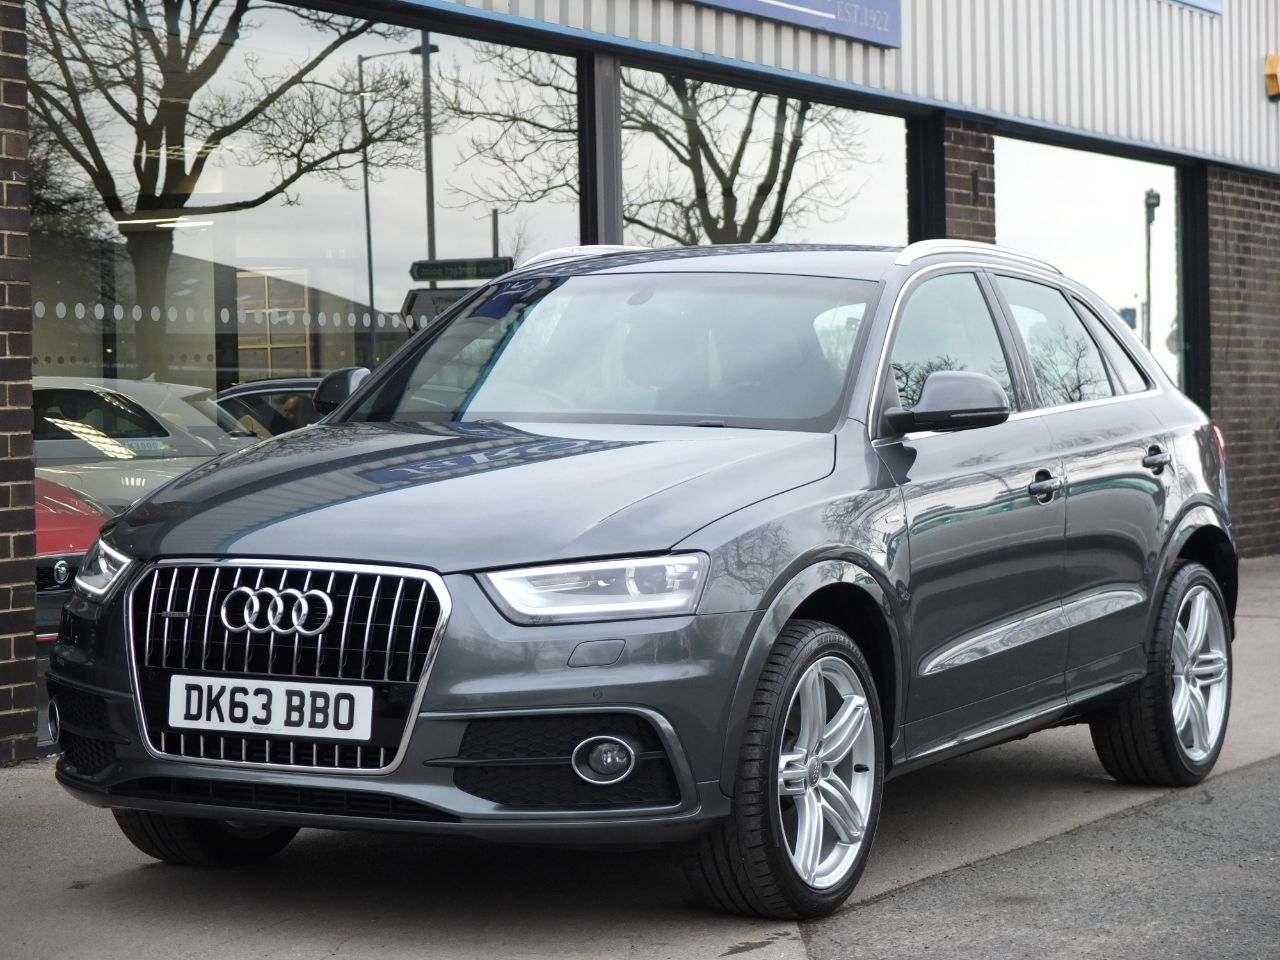 Audi Q3 2.0 TDI quattro S Line Estate Diesel Daytona Grey MetallicAudi Q3 2.0 TDI quattro S Line Estate Diesel Daytona Grey Metallic at fa Roper Ltd Bradford